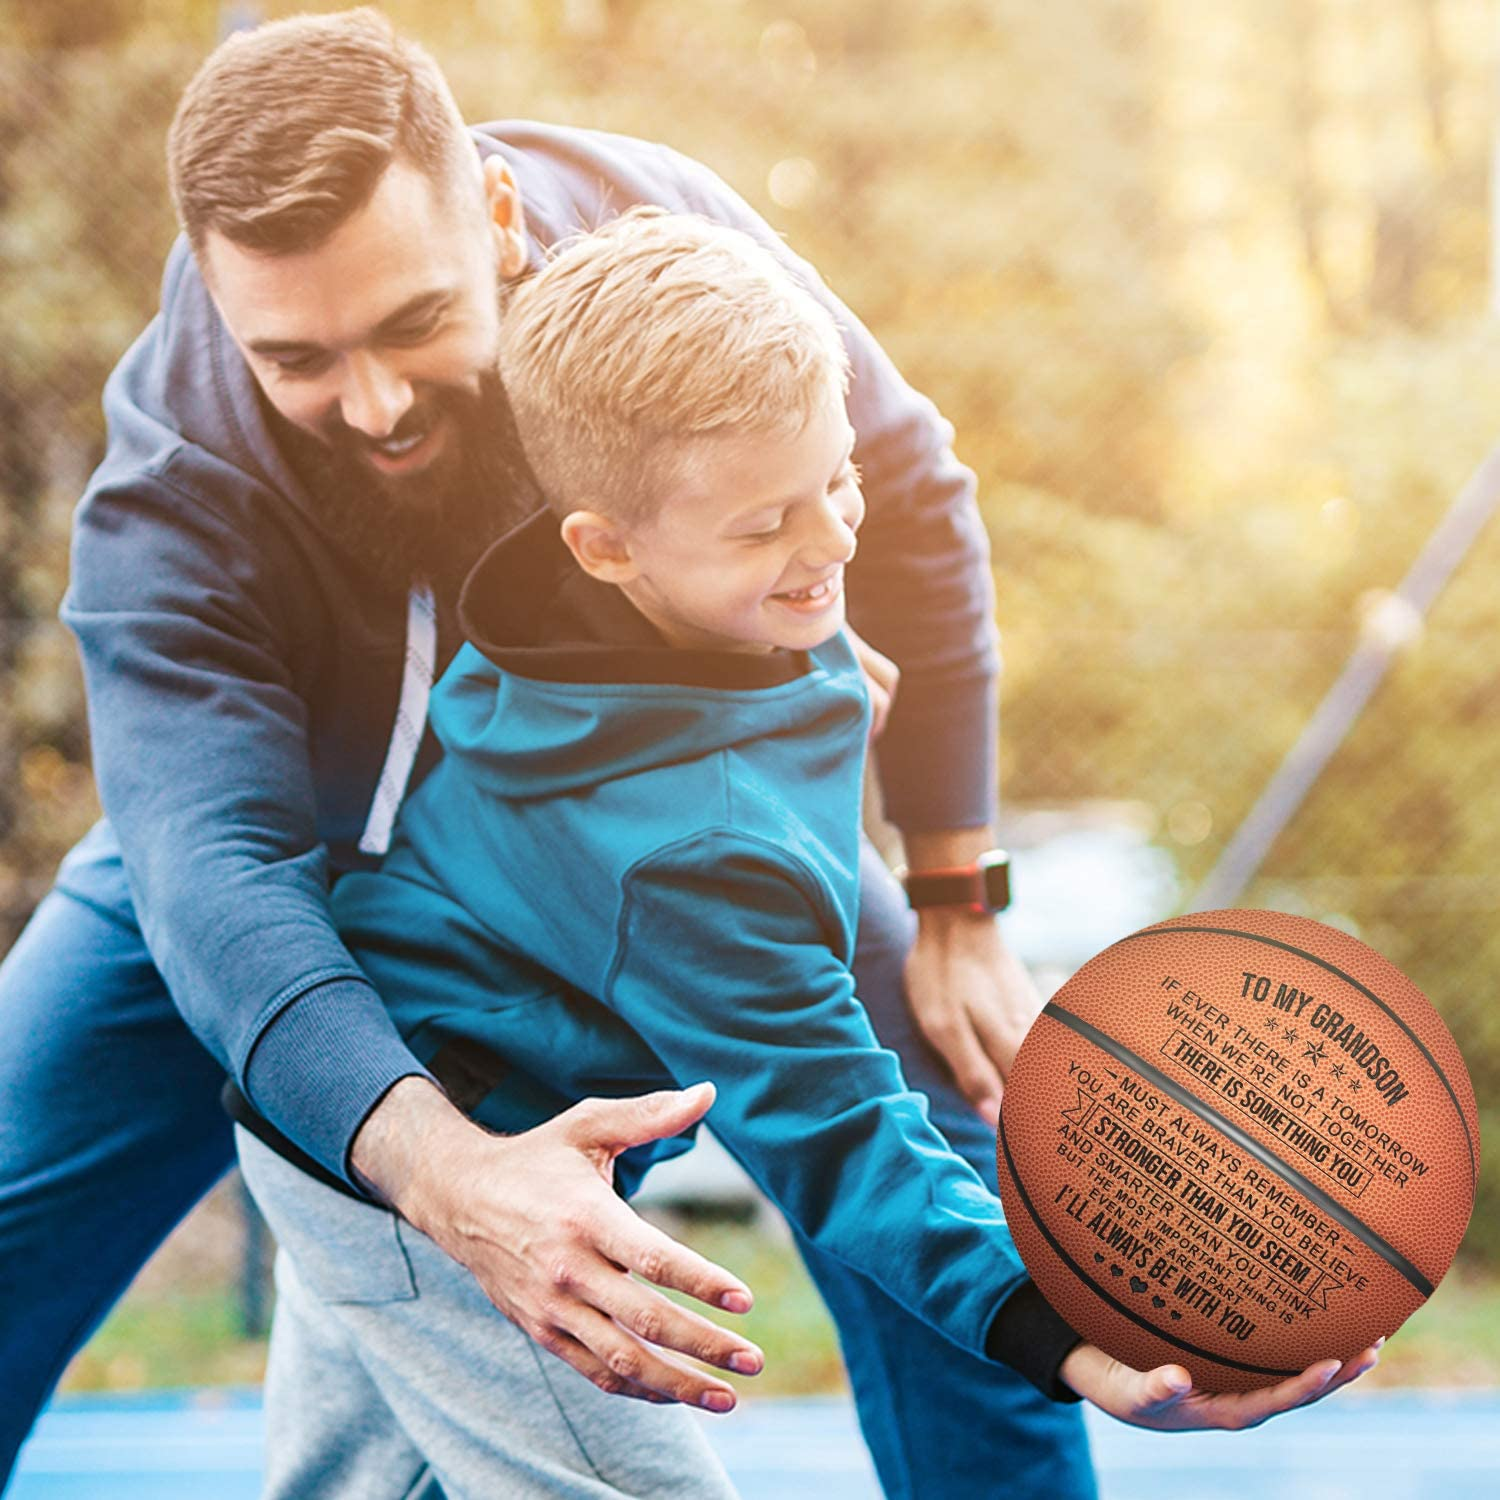 KWOOD Customized Basketballs for Men,Personalized Indoor//Outdoor Game Leather Basketball,Engraved Best Gift for Son from Mom Dad